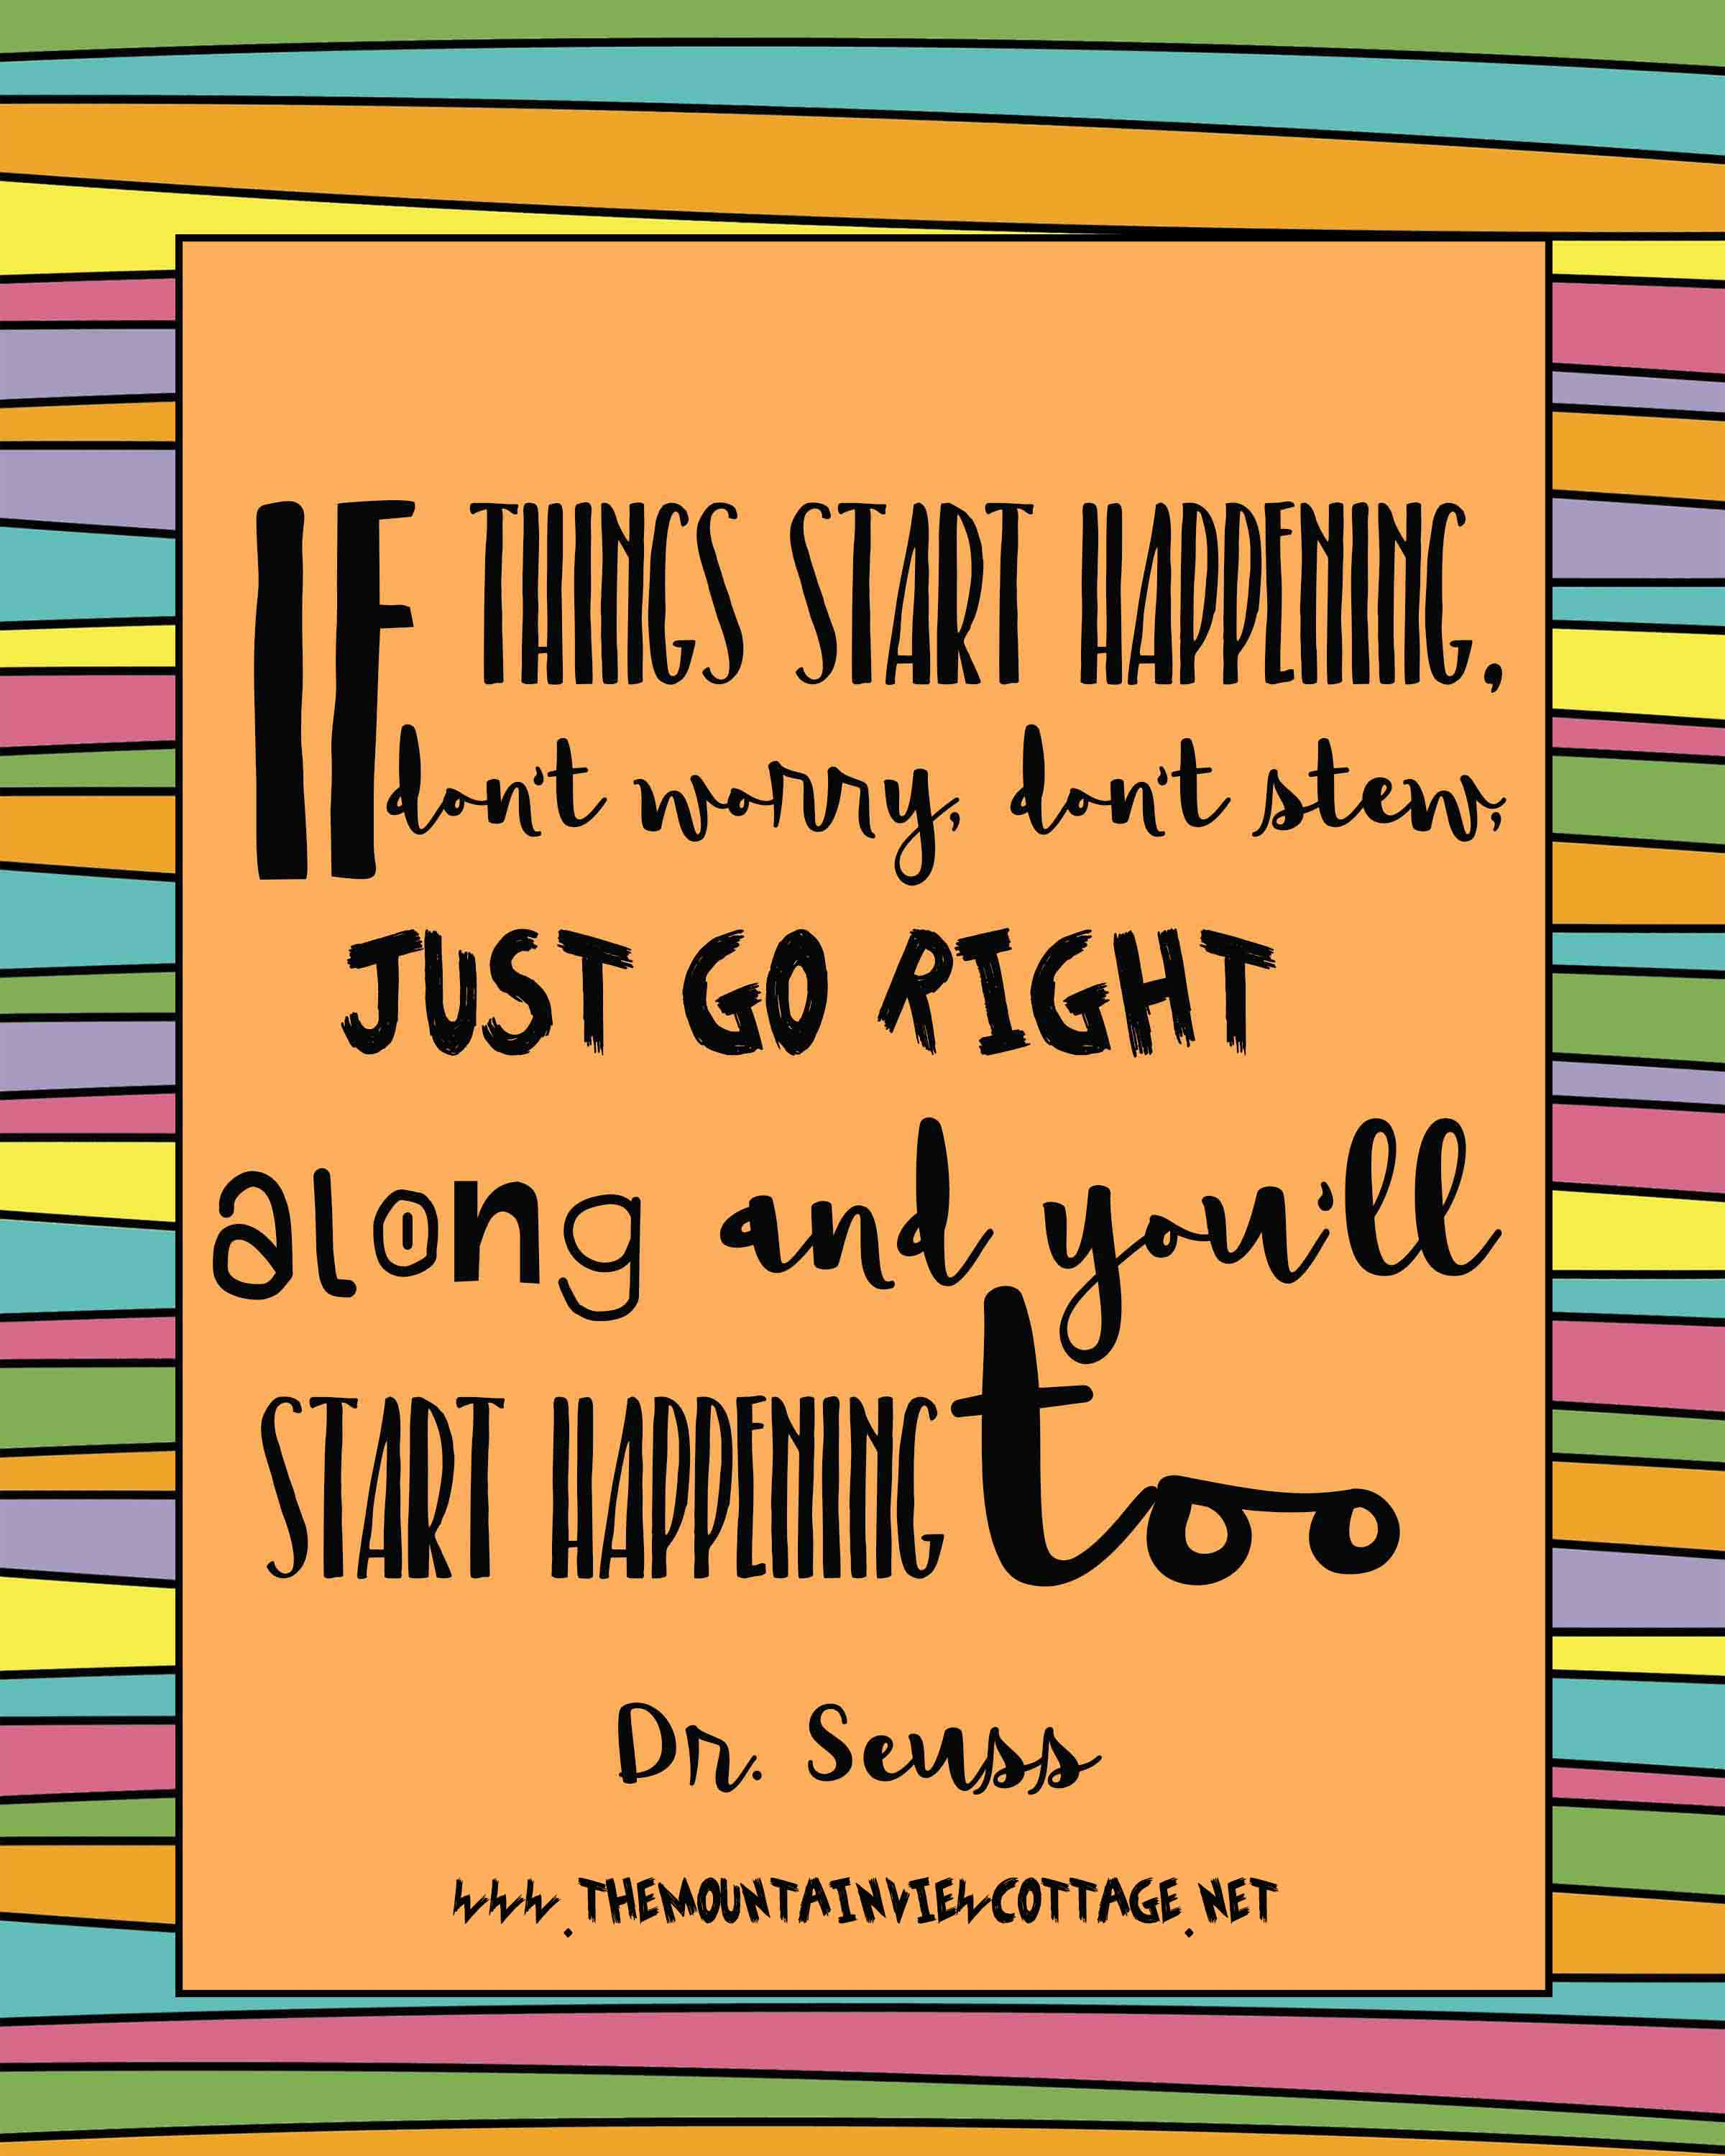 Dr.Seuss quotes-Quotes about life-Inspirational quotes-kid quotes-if things start happening don't worry don't stress just go right along and you'll start happenings too